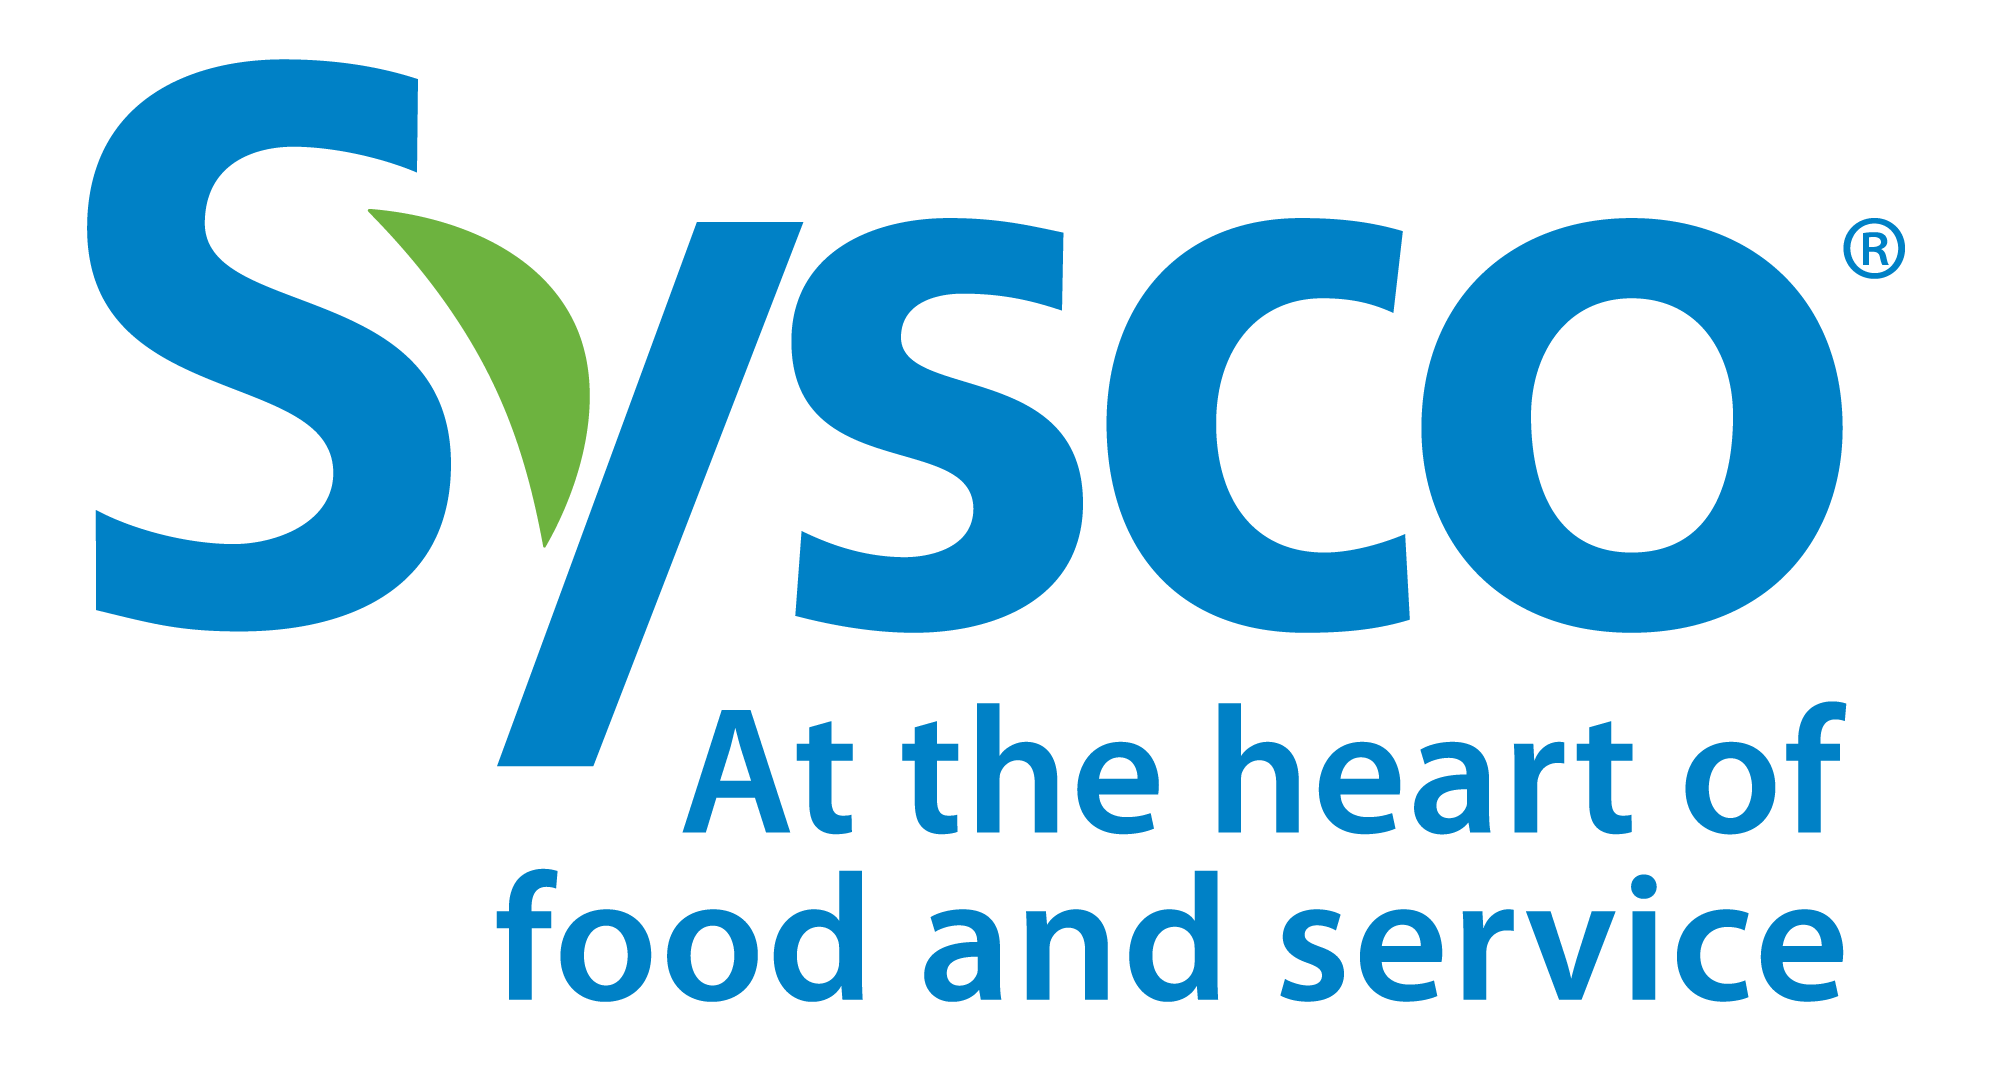 Sysco_Logo-At_the_heart-Color_RBG-stacked